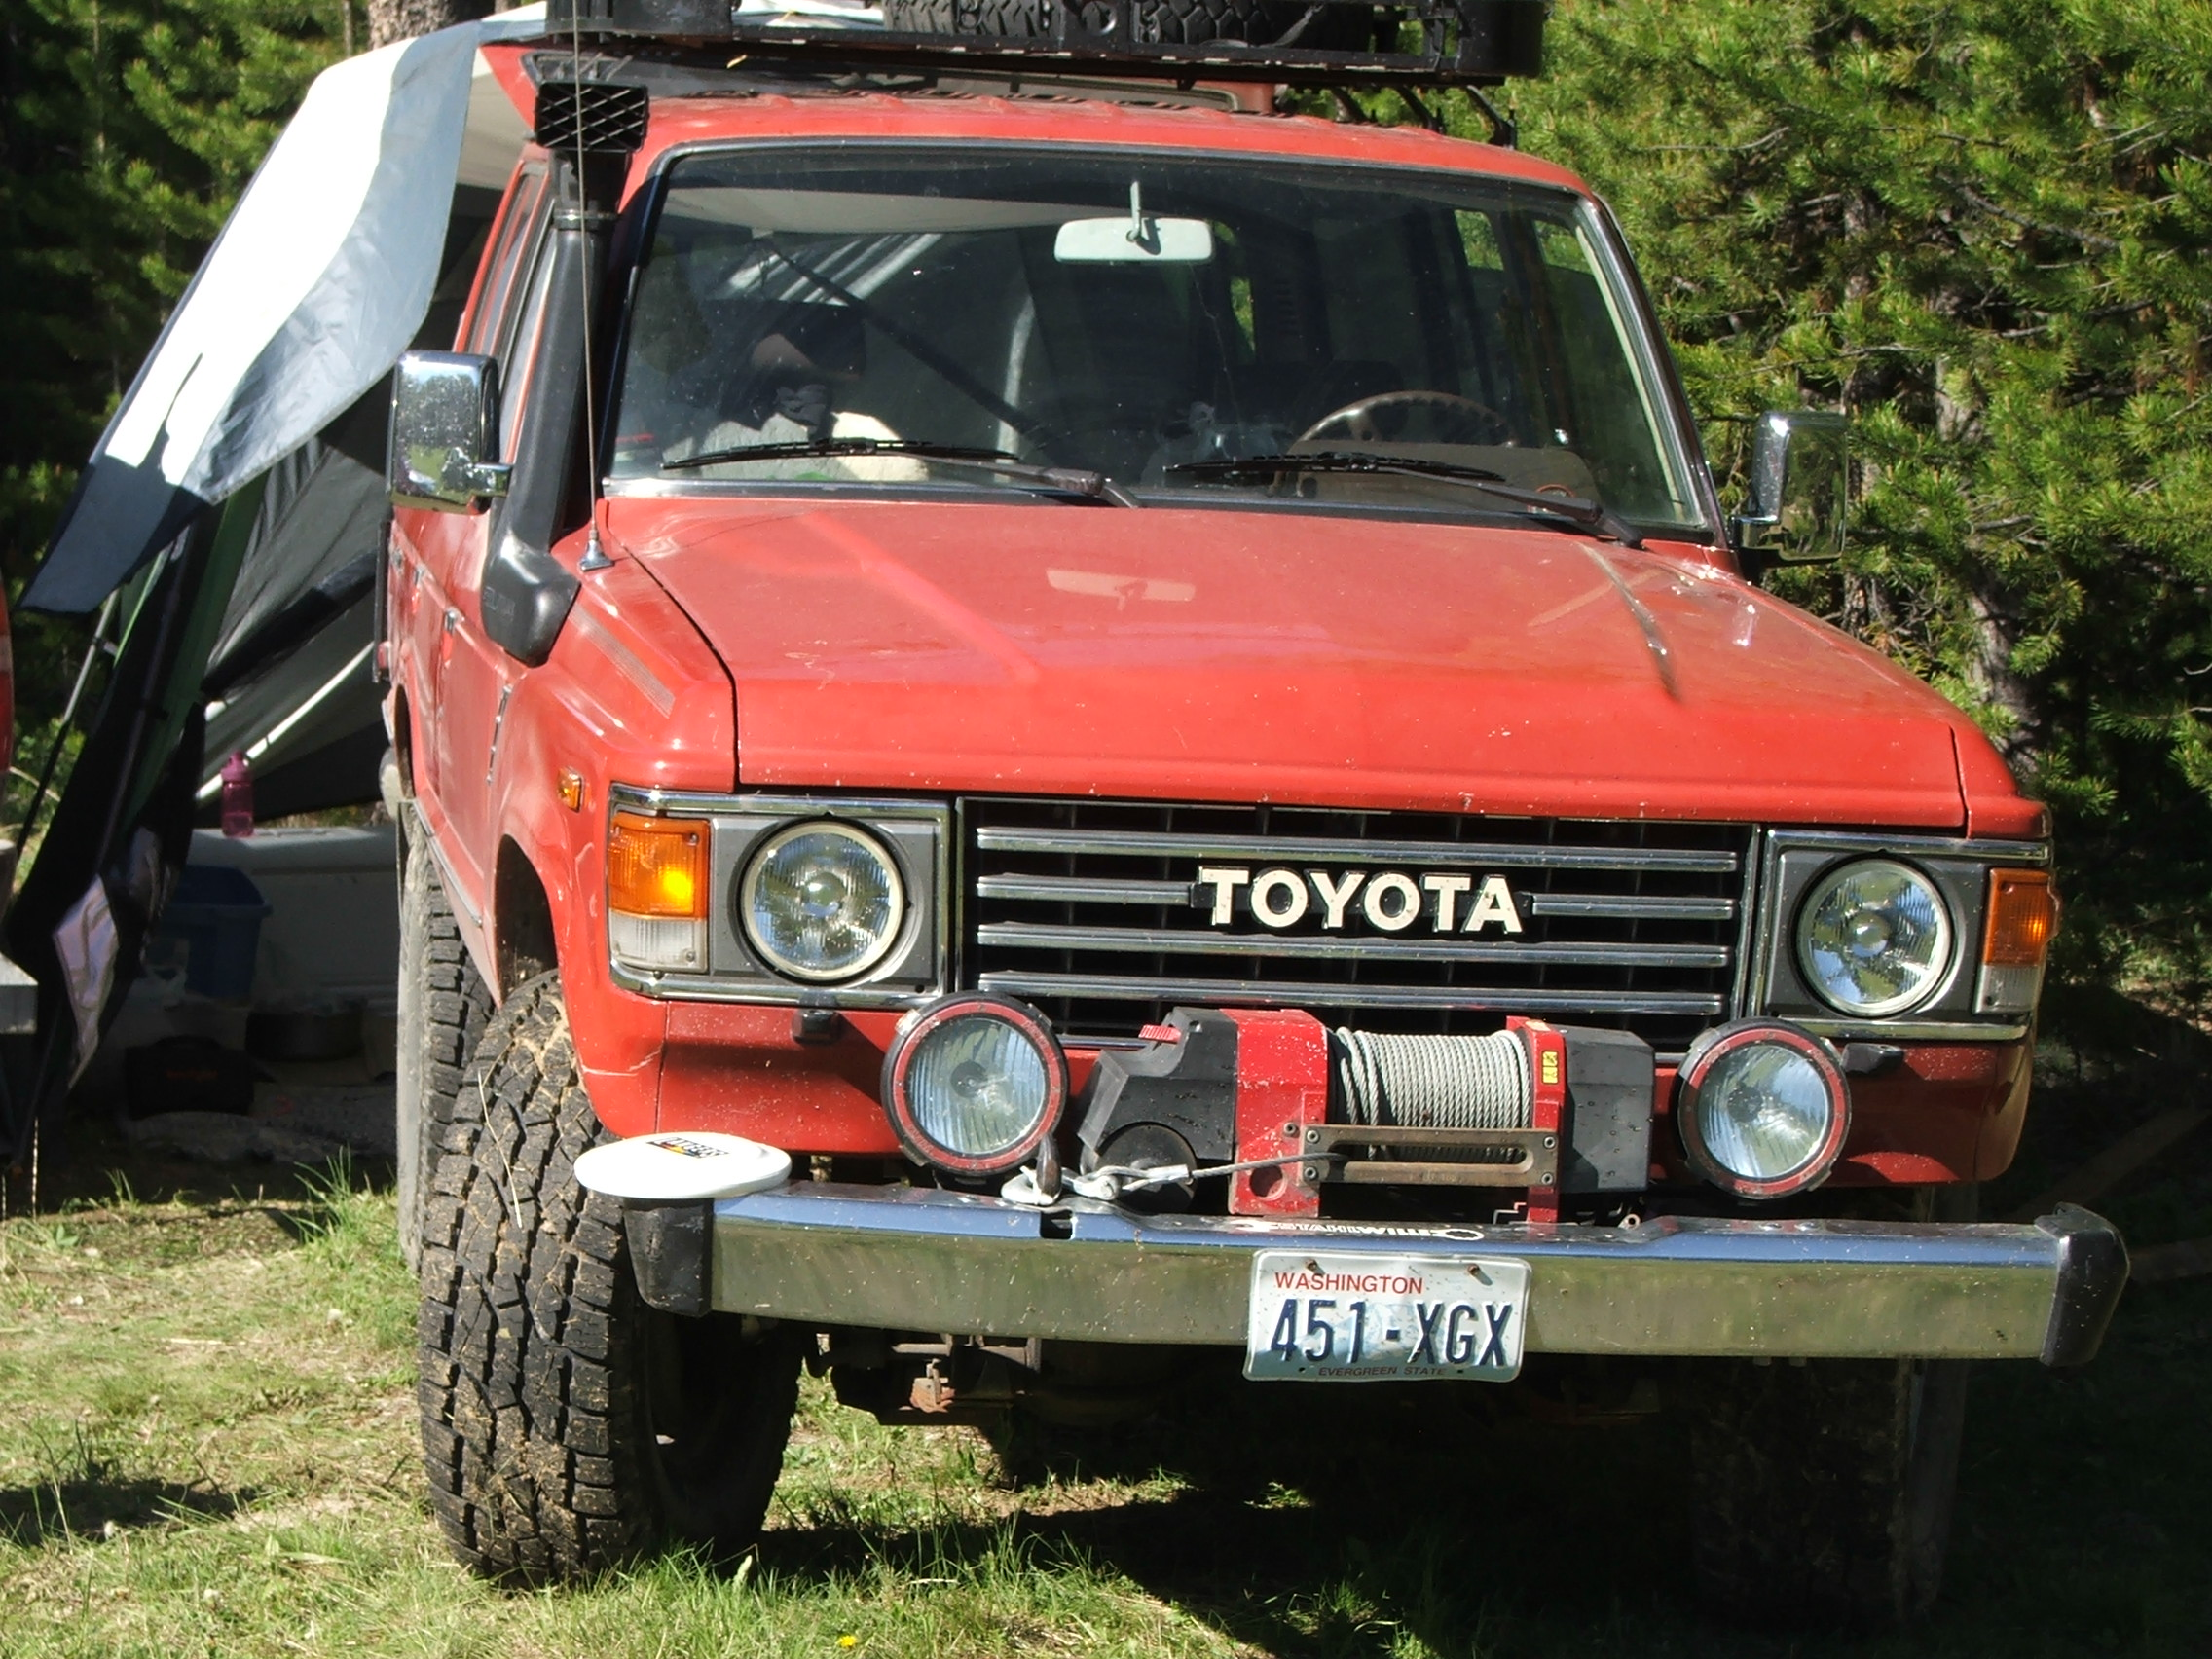 toyota landcruser i have tbi 350 and it will not start if this is my fj60 just reply when ready jason